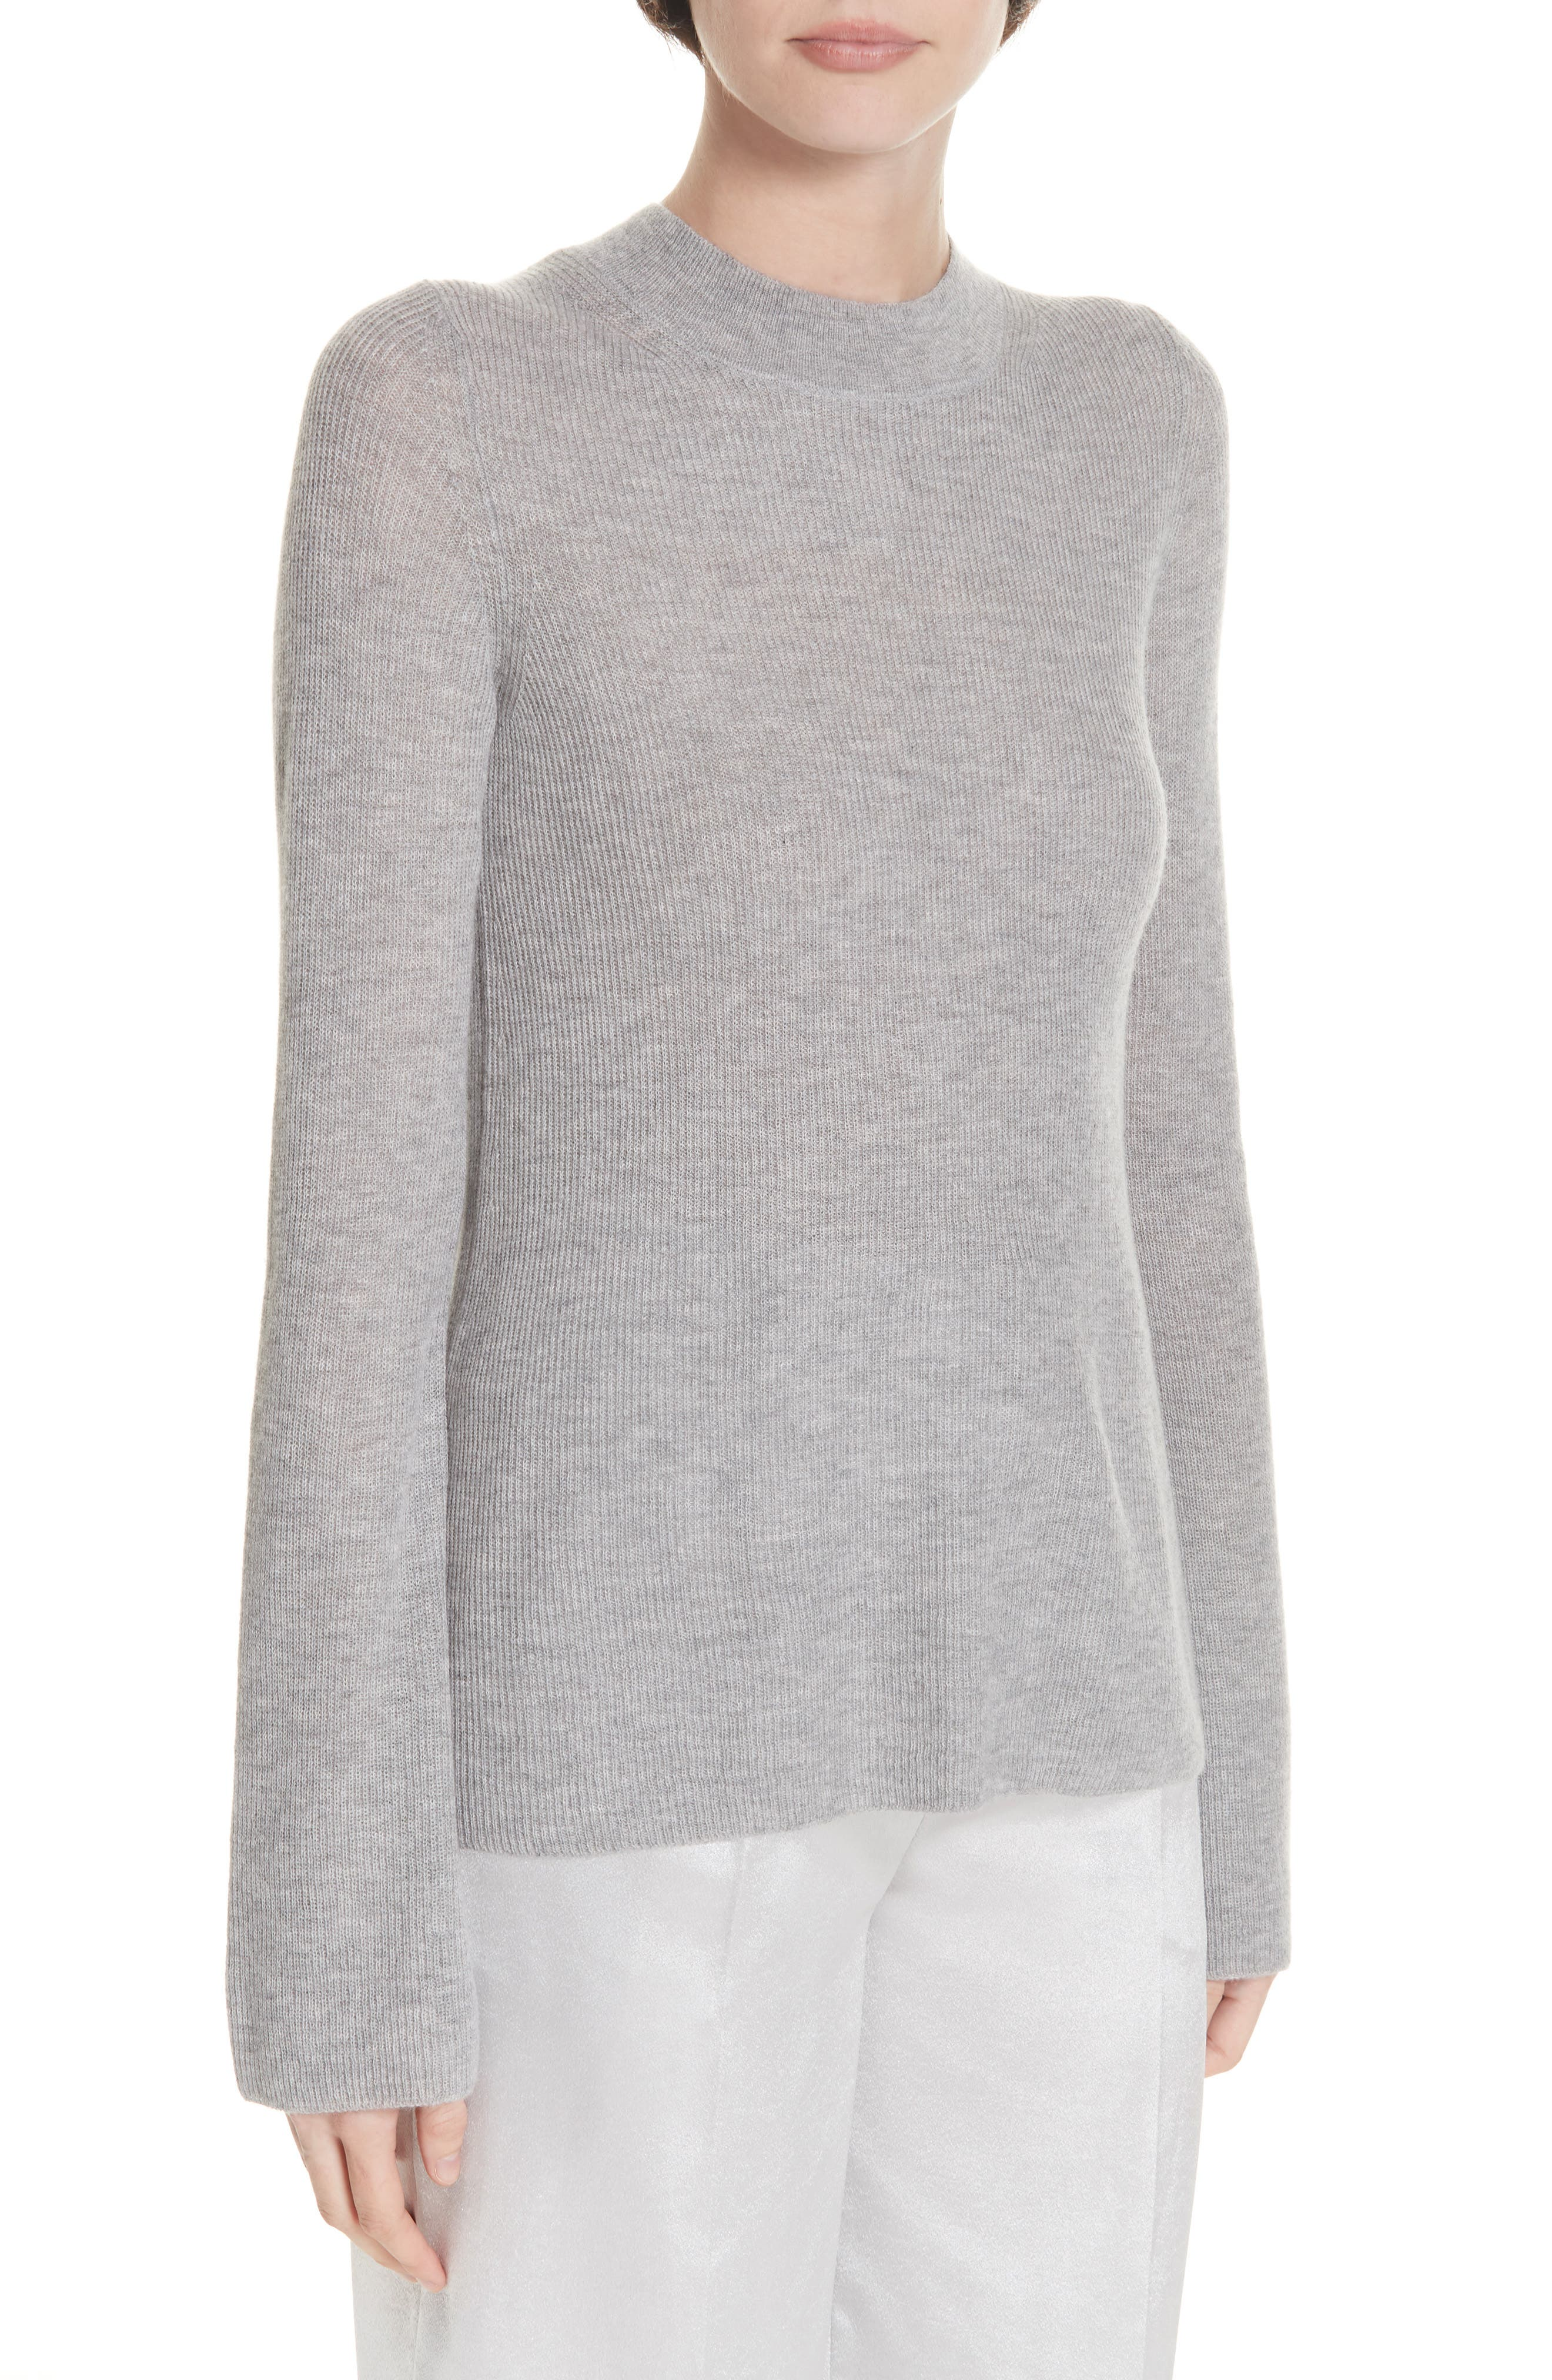 Ribbed Cashmere Sweater,                             Alternate thumbnail 4, color,                             H STEEL